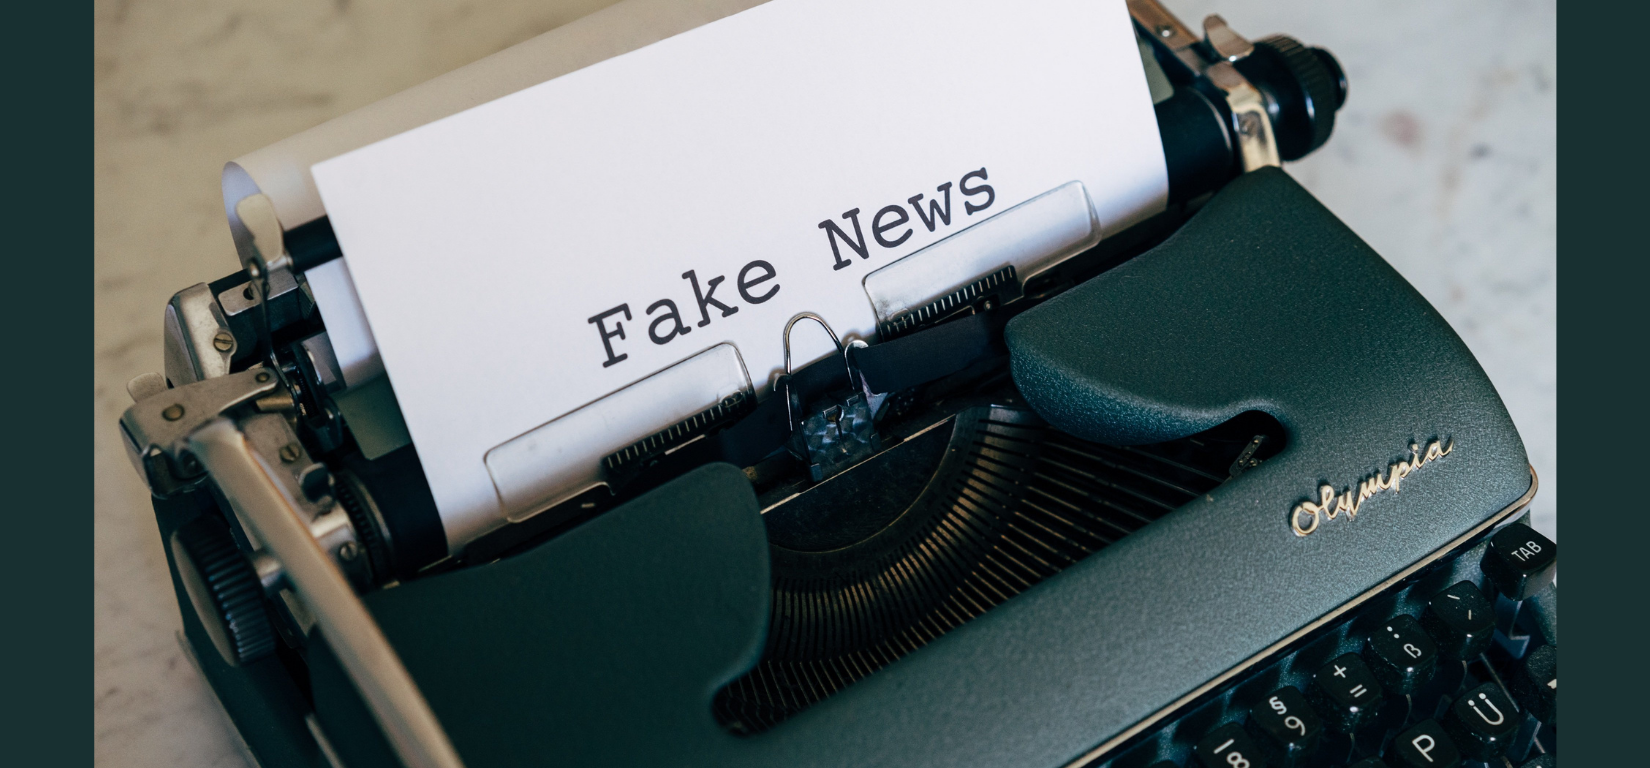 an image of a typewriter and a paper that says fake news placed against a dark background